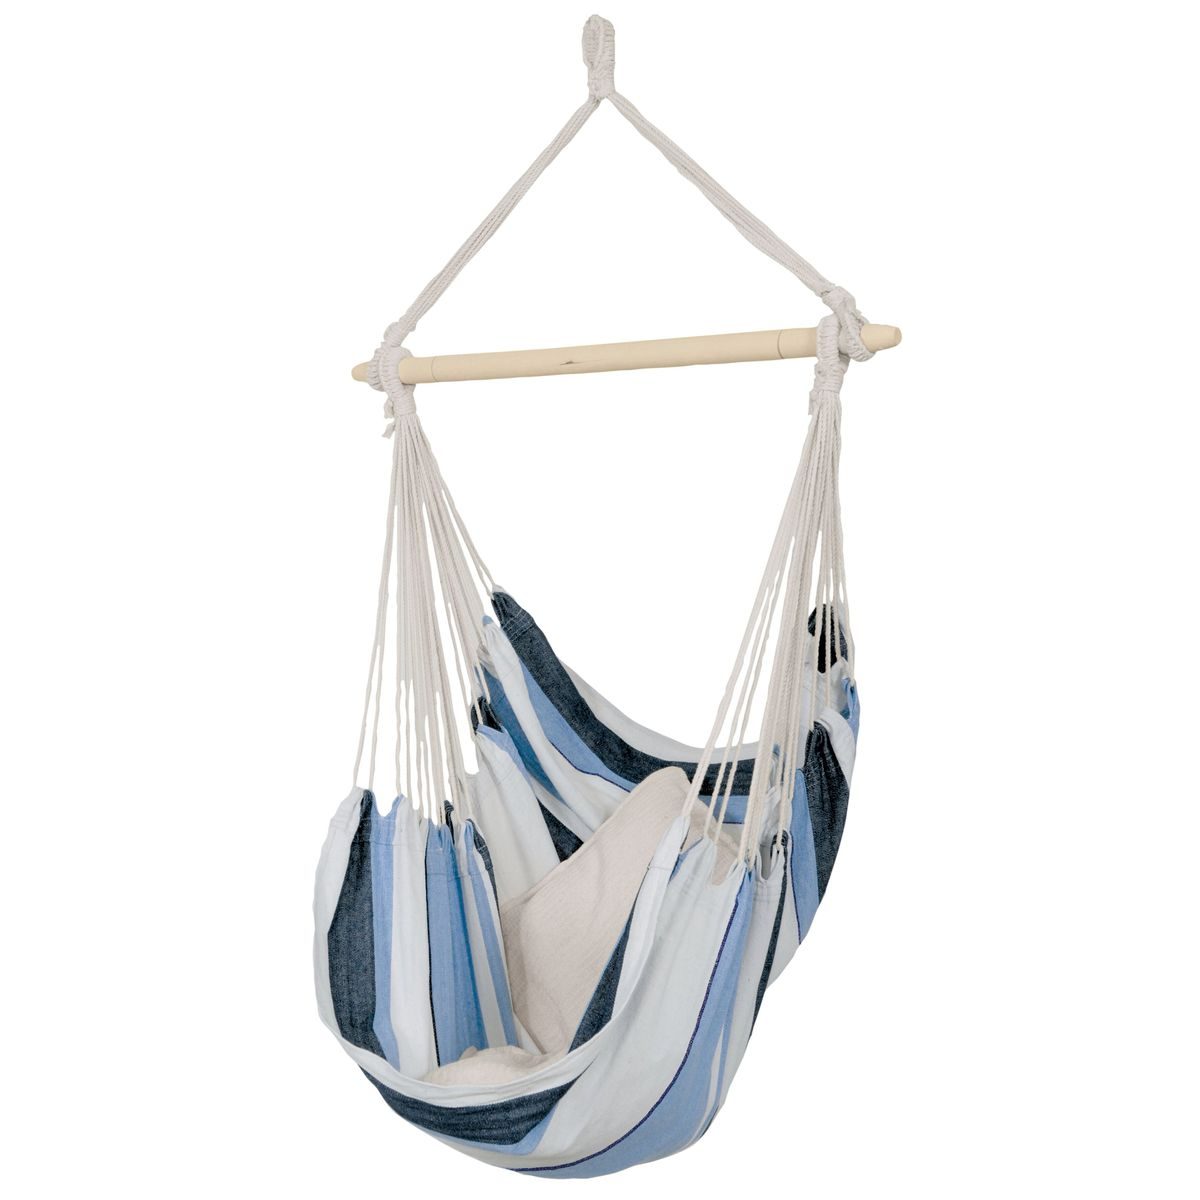 Amazonas Havanna marine Hanging Chair - Ruby's Garden Boutique